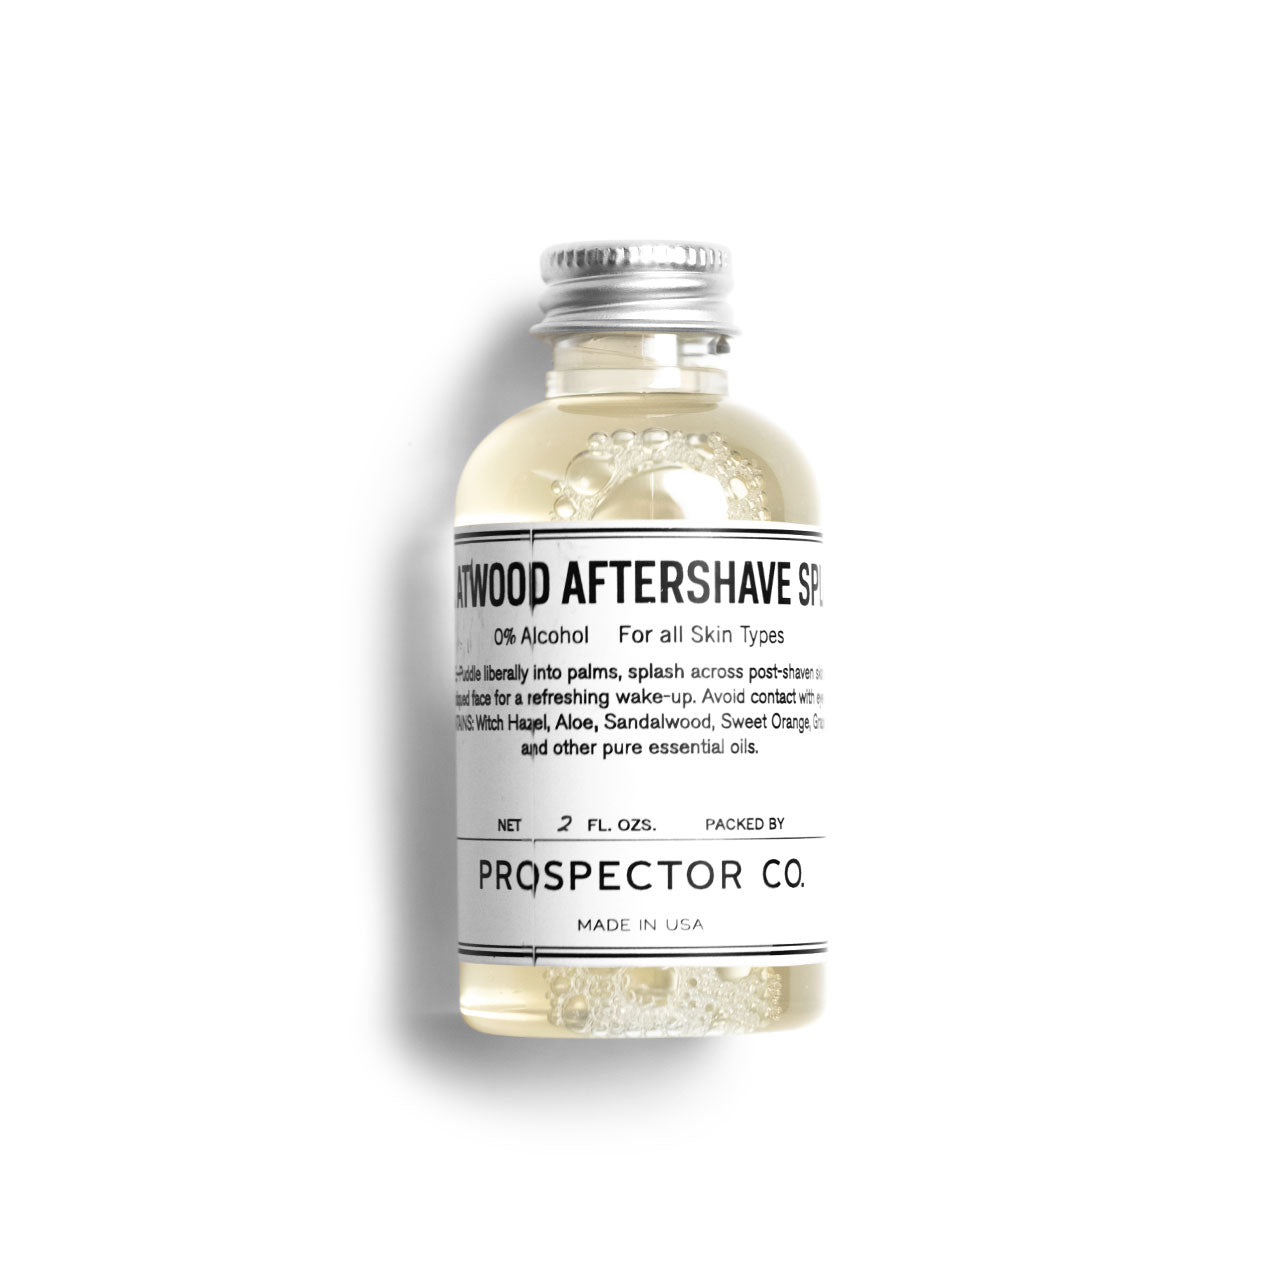 Prospector Co. KC Atwood Aftershave